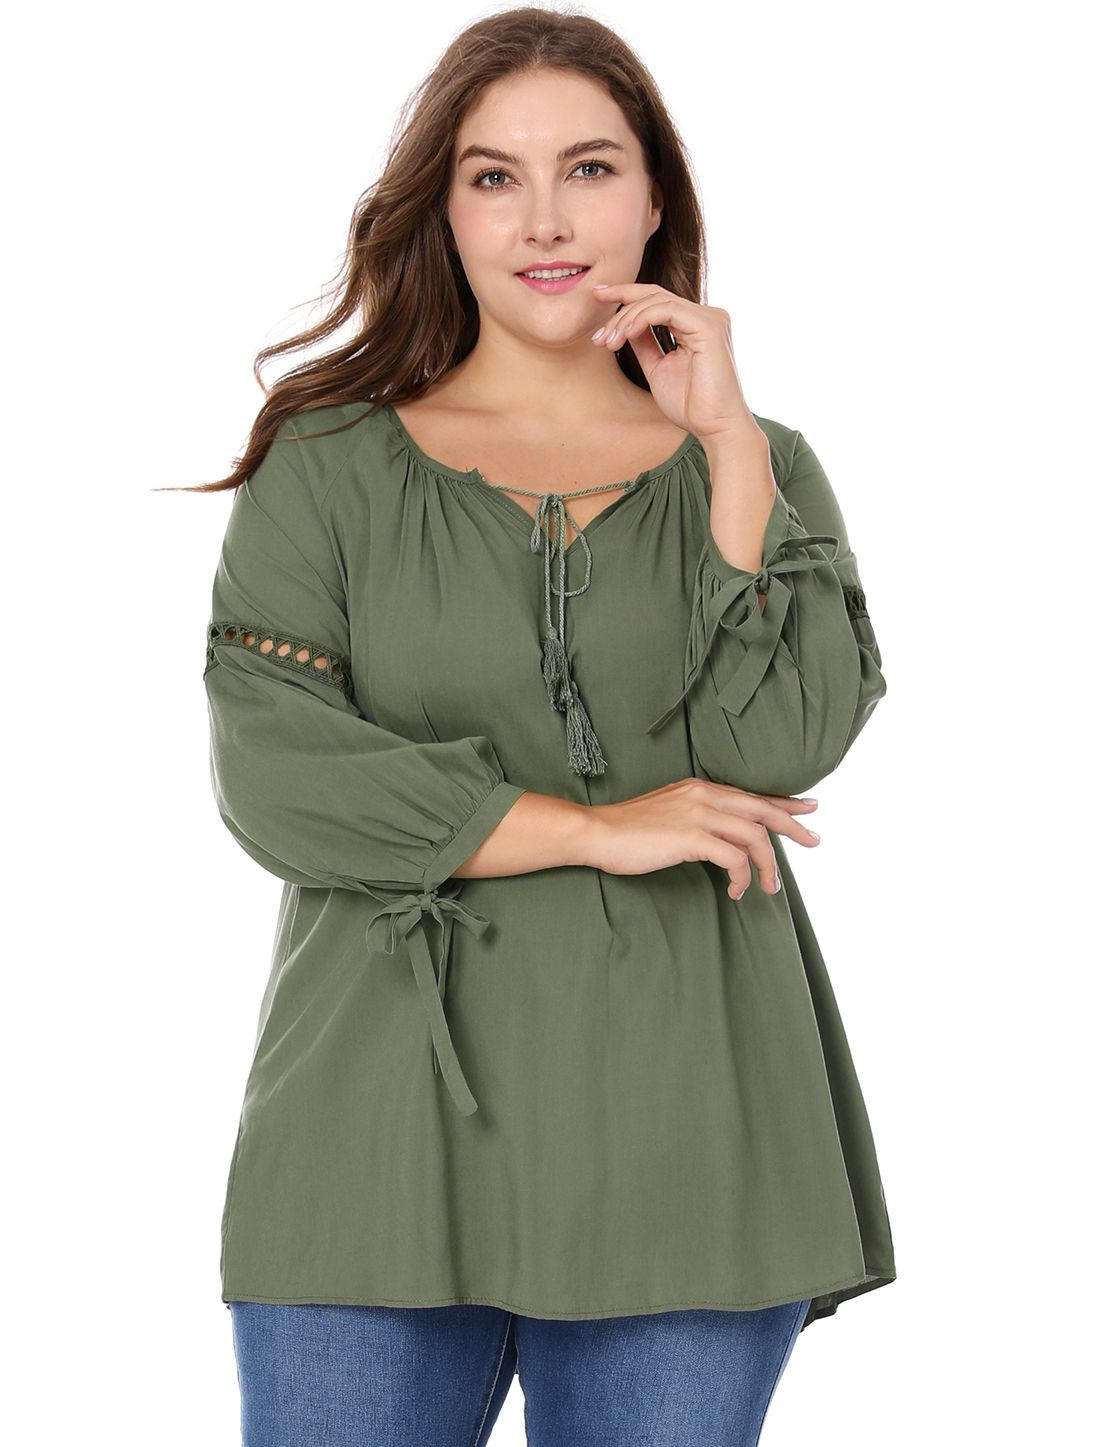 85757215a4c80d Women Plus Size Raglan Sleeves Hollow Out Tie Neck Tunic Top - Top   Blouses